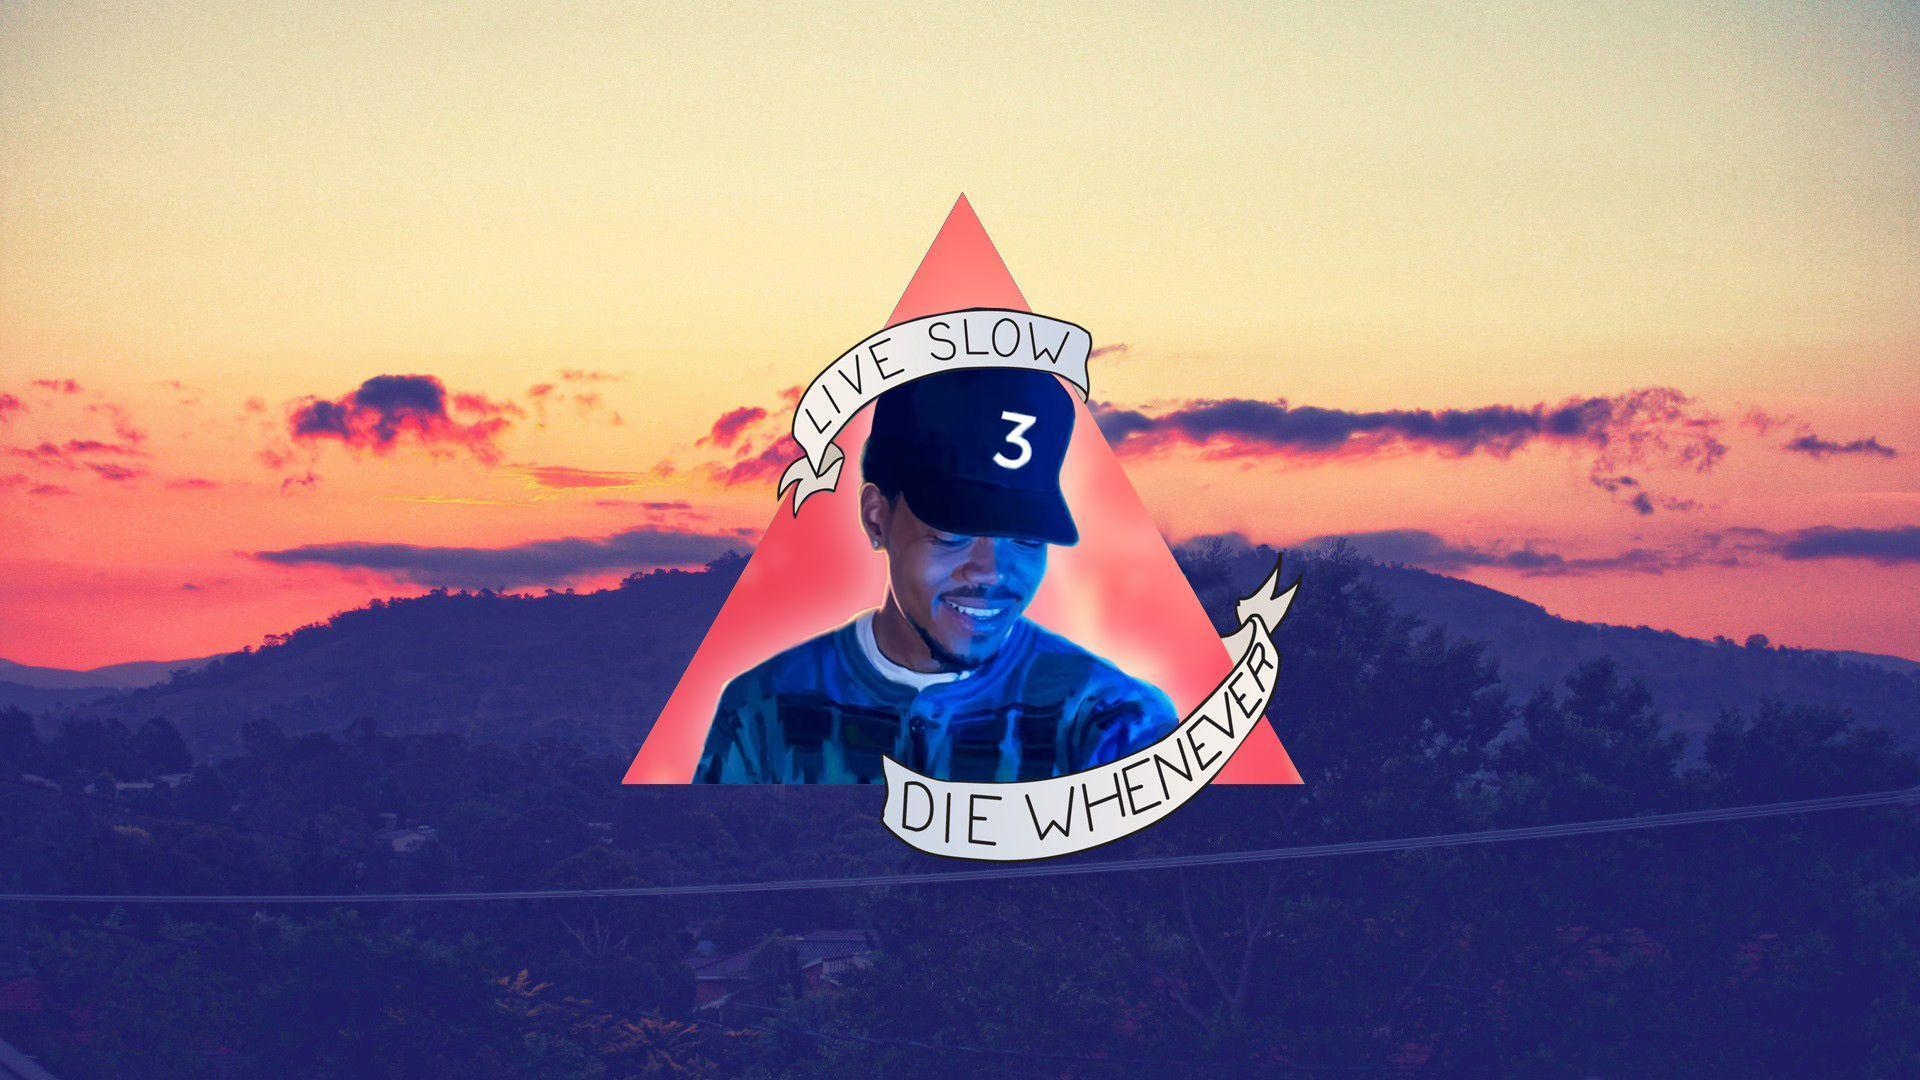 Chance The Rapper Iphone Wallpaper Chance The Rapper Wallpapers Wallpaper Cave